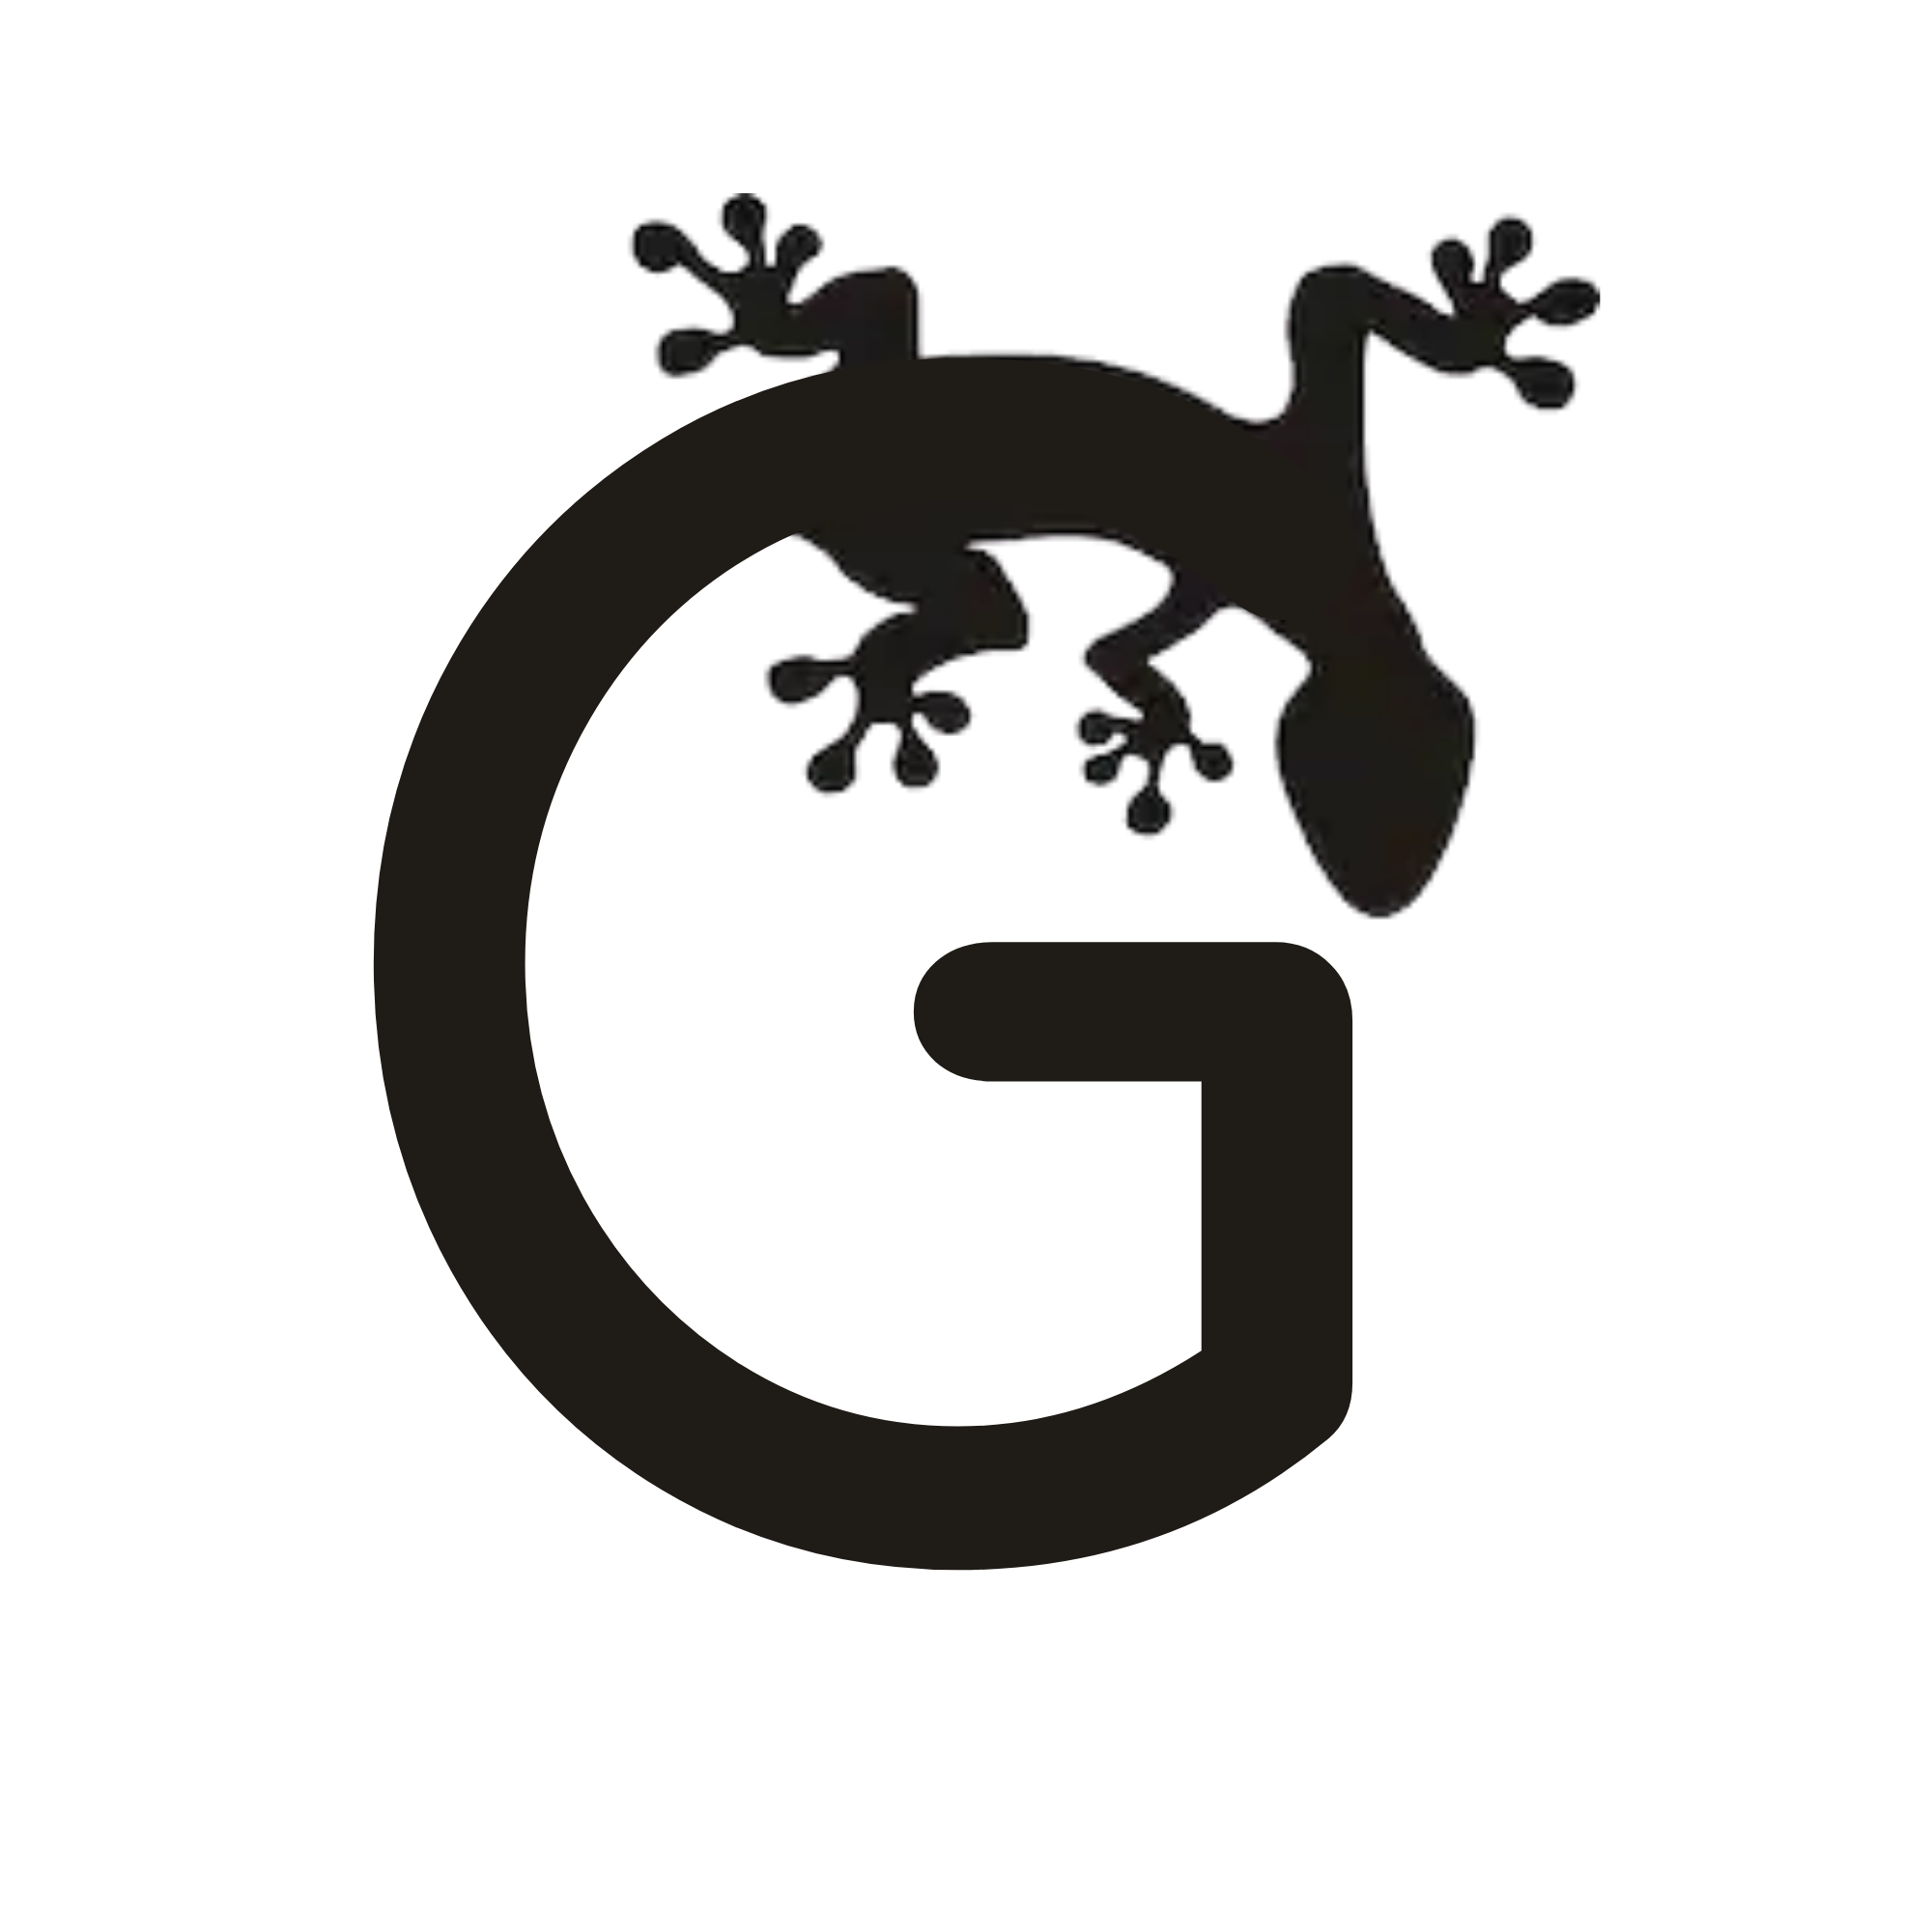 Gecko Edit logo of gecko in the shape of a capital G